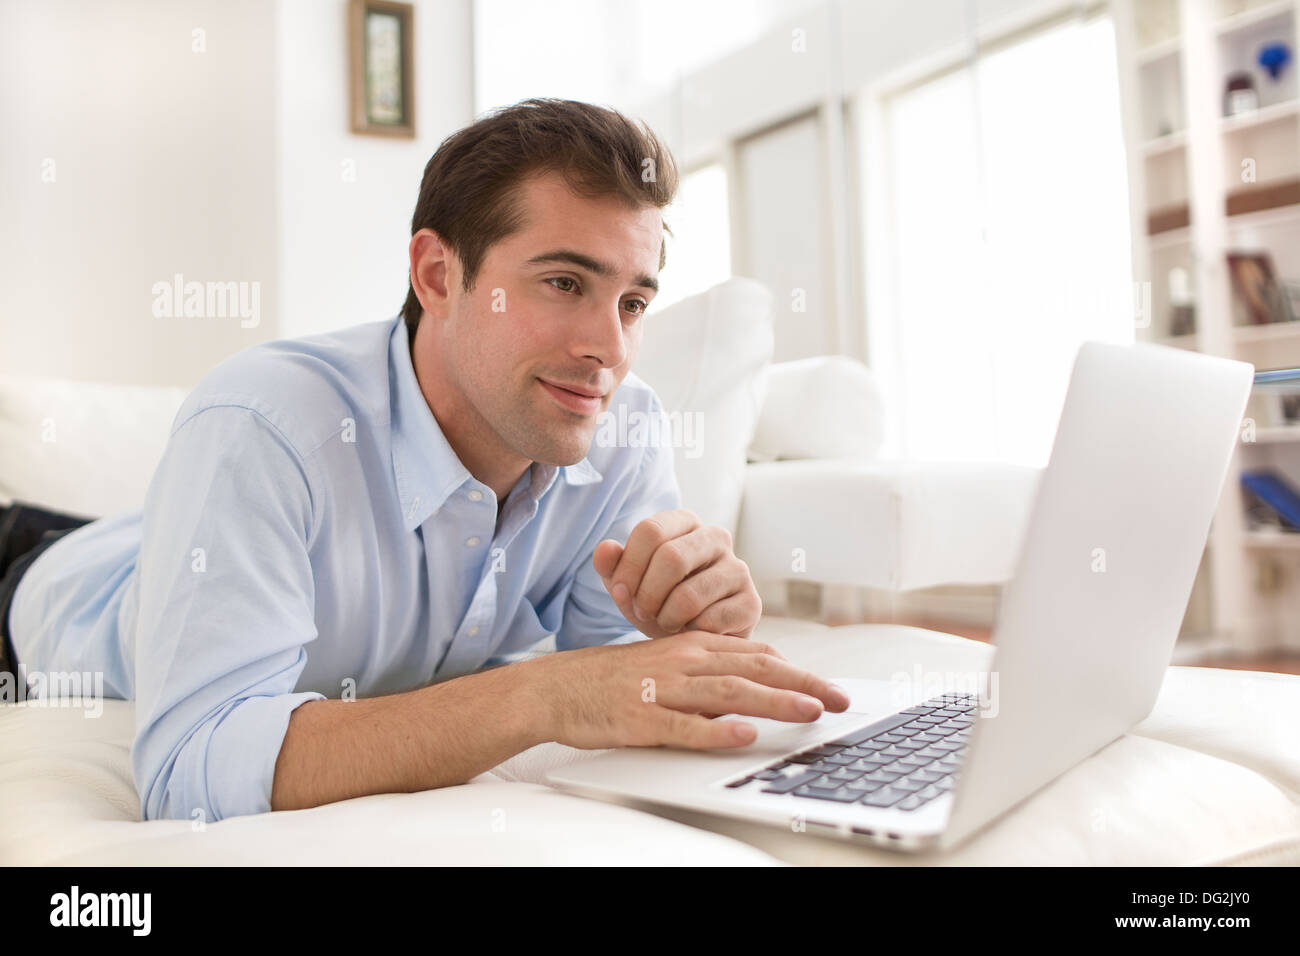 Male indoor computer surf internet online mail - Stock Image